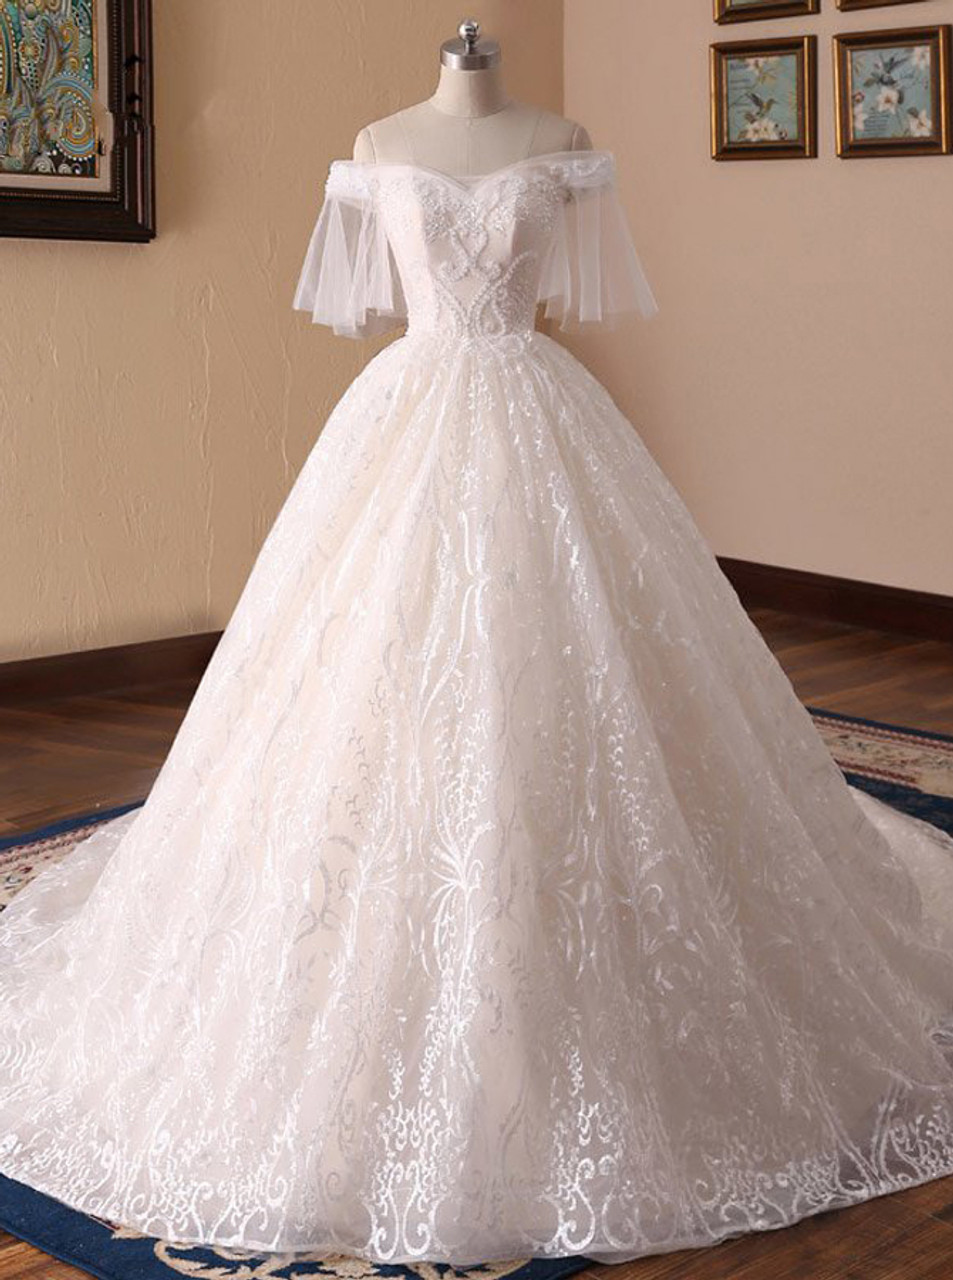 Lace Wedding Dresses With Short Sleeves Princess Ball Gown Wedding